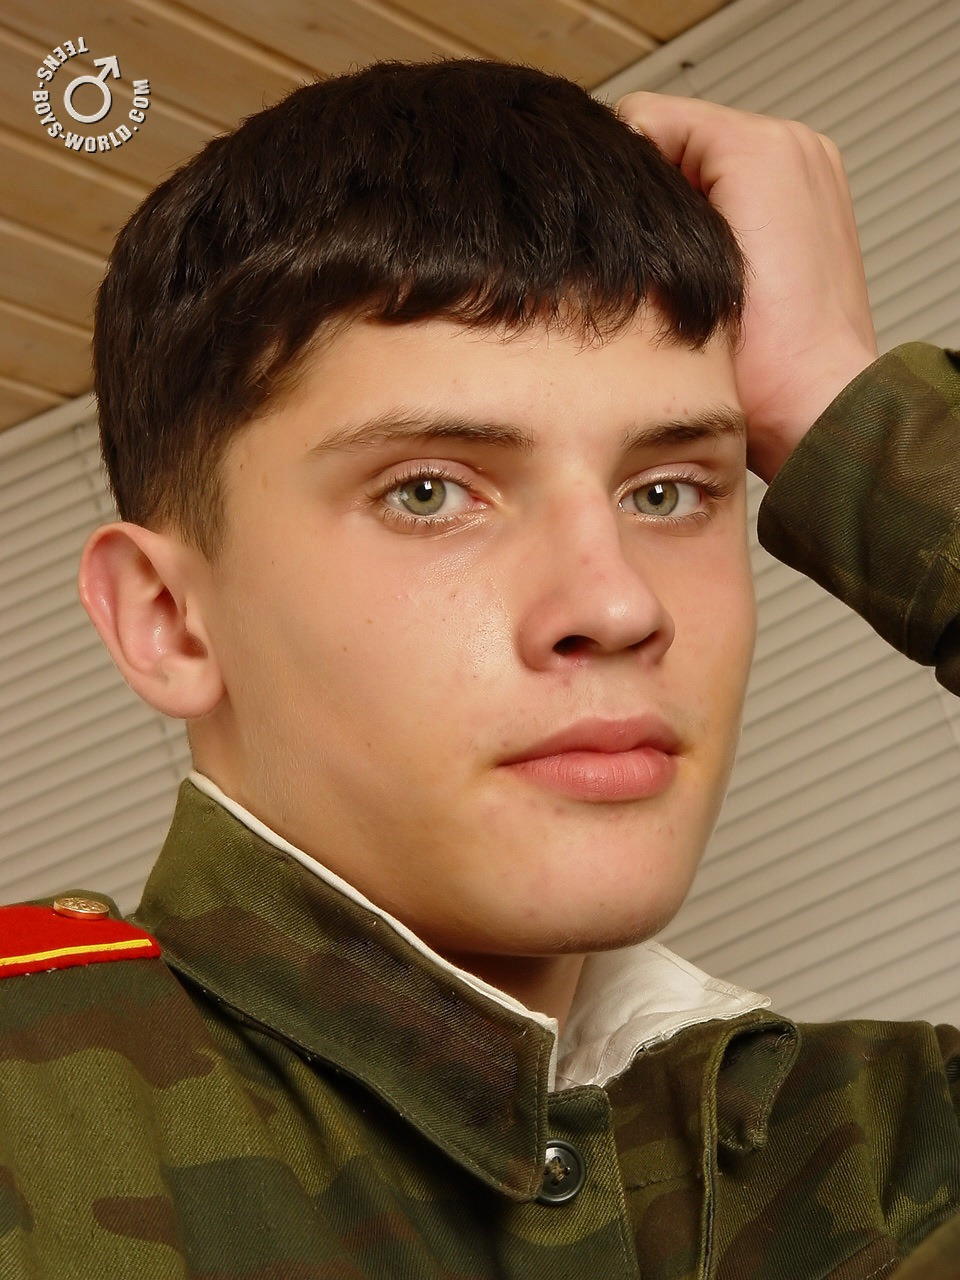 Russian teen boy model from